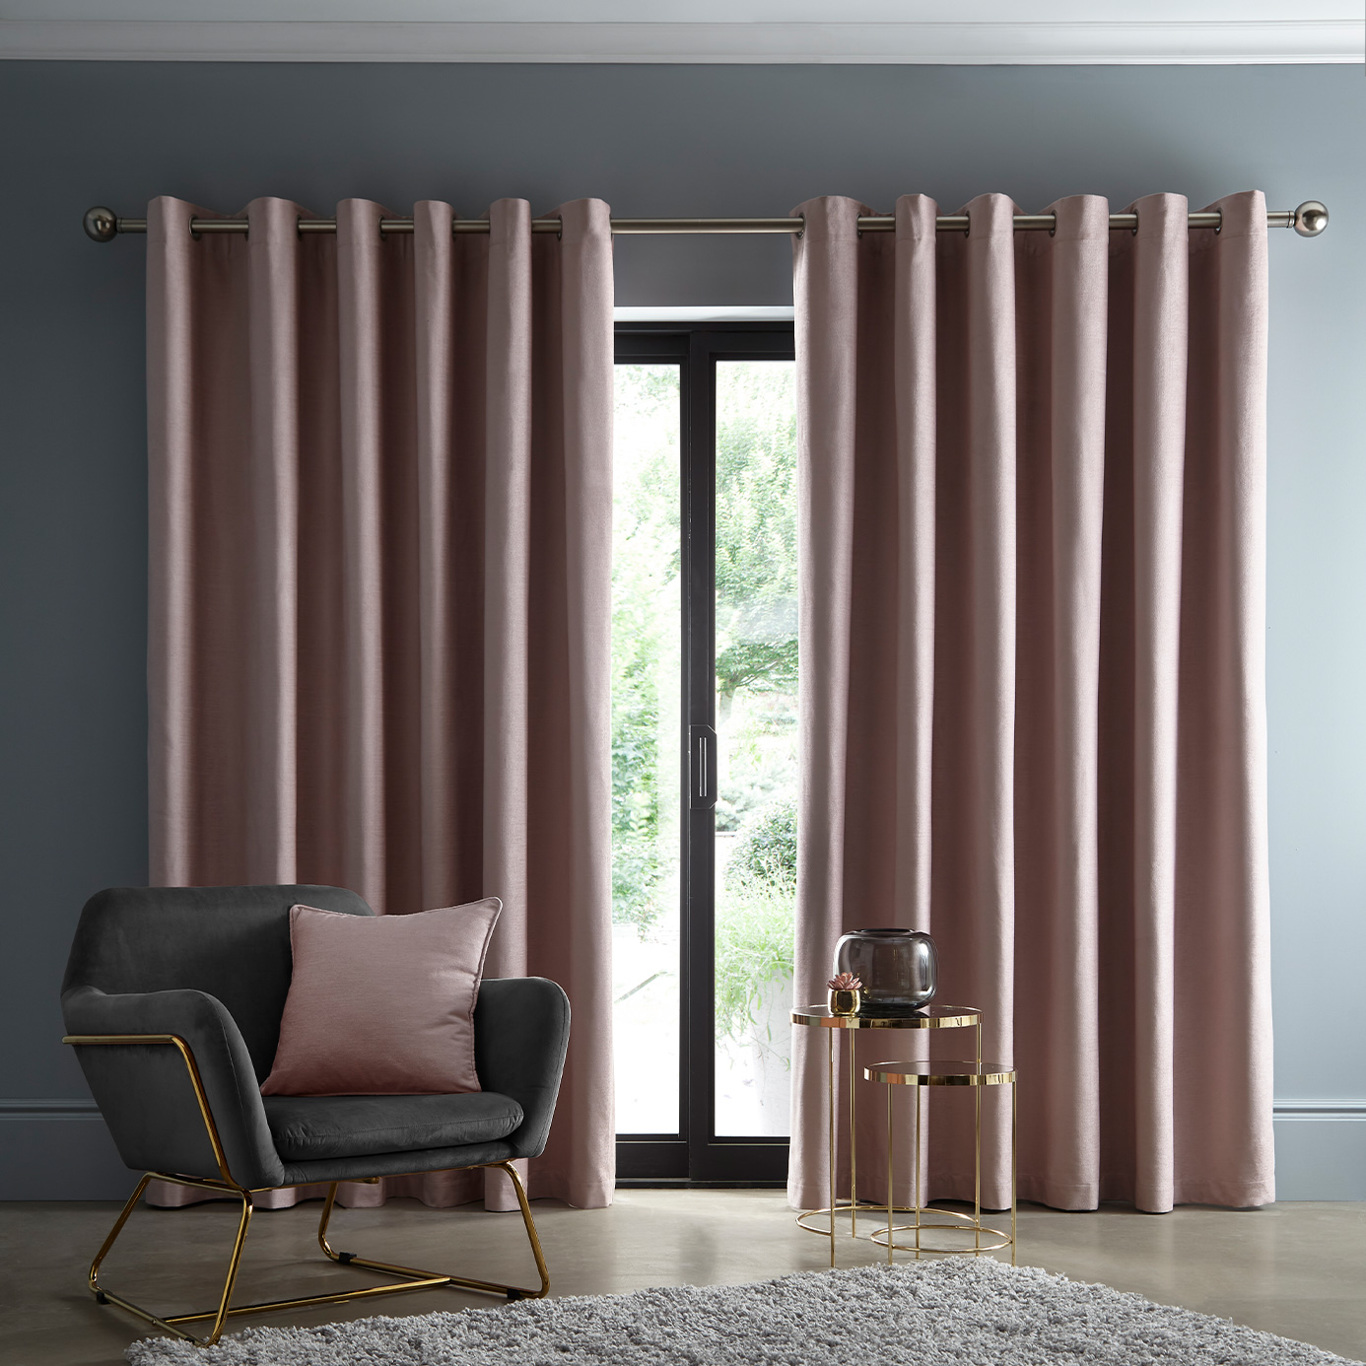 Arezzo Curtain by STG